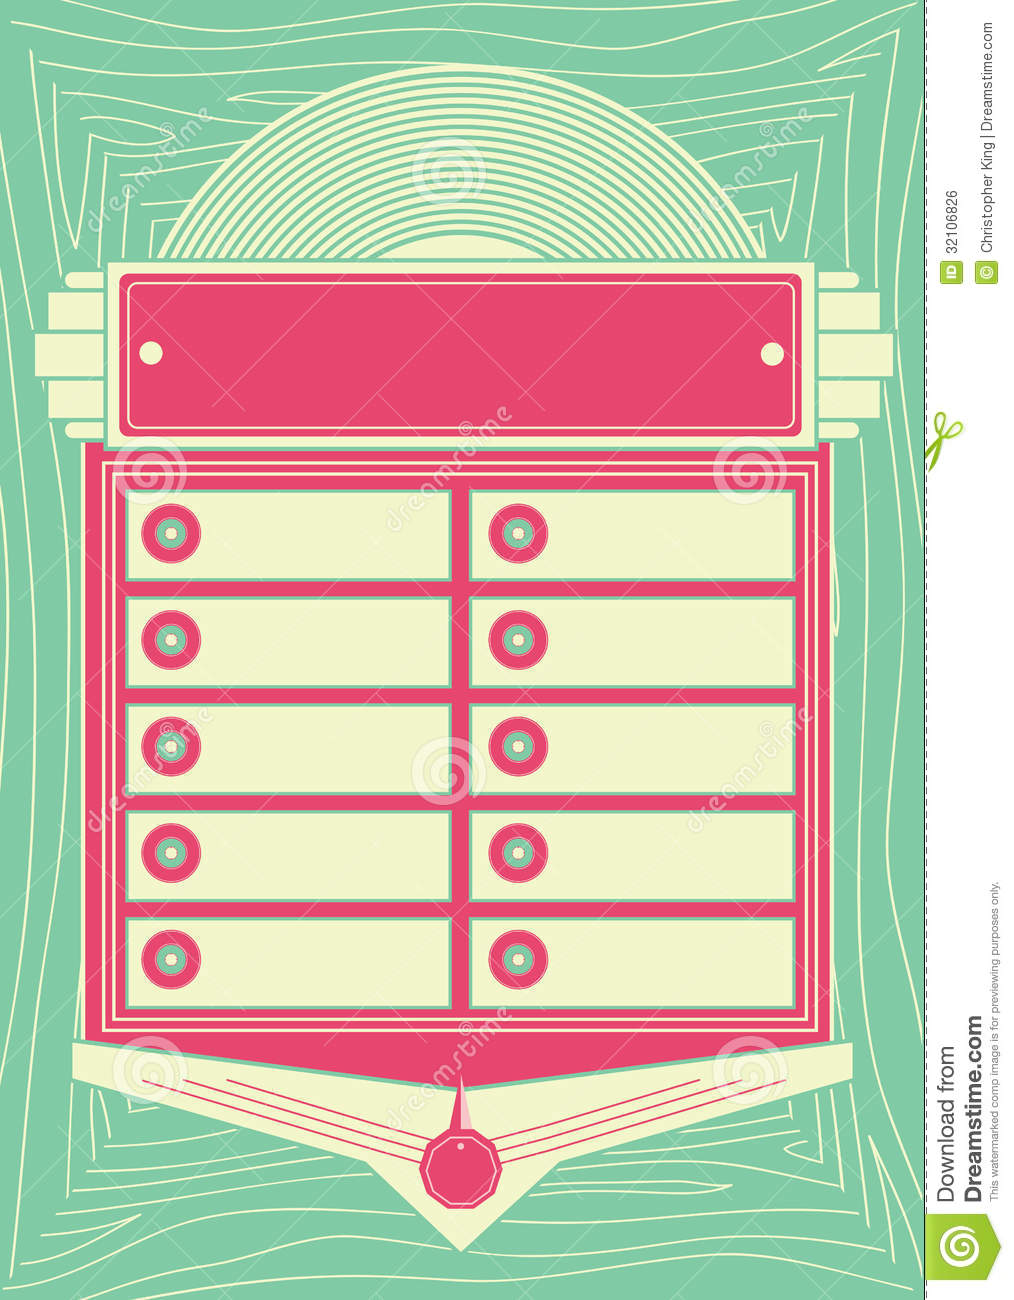 1950s Style Jukebox Background and Frame